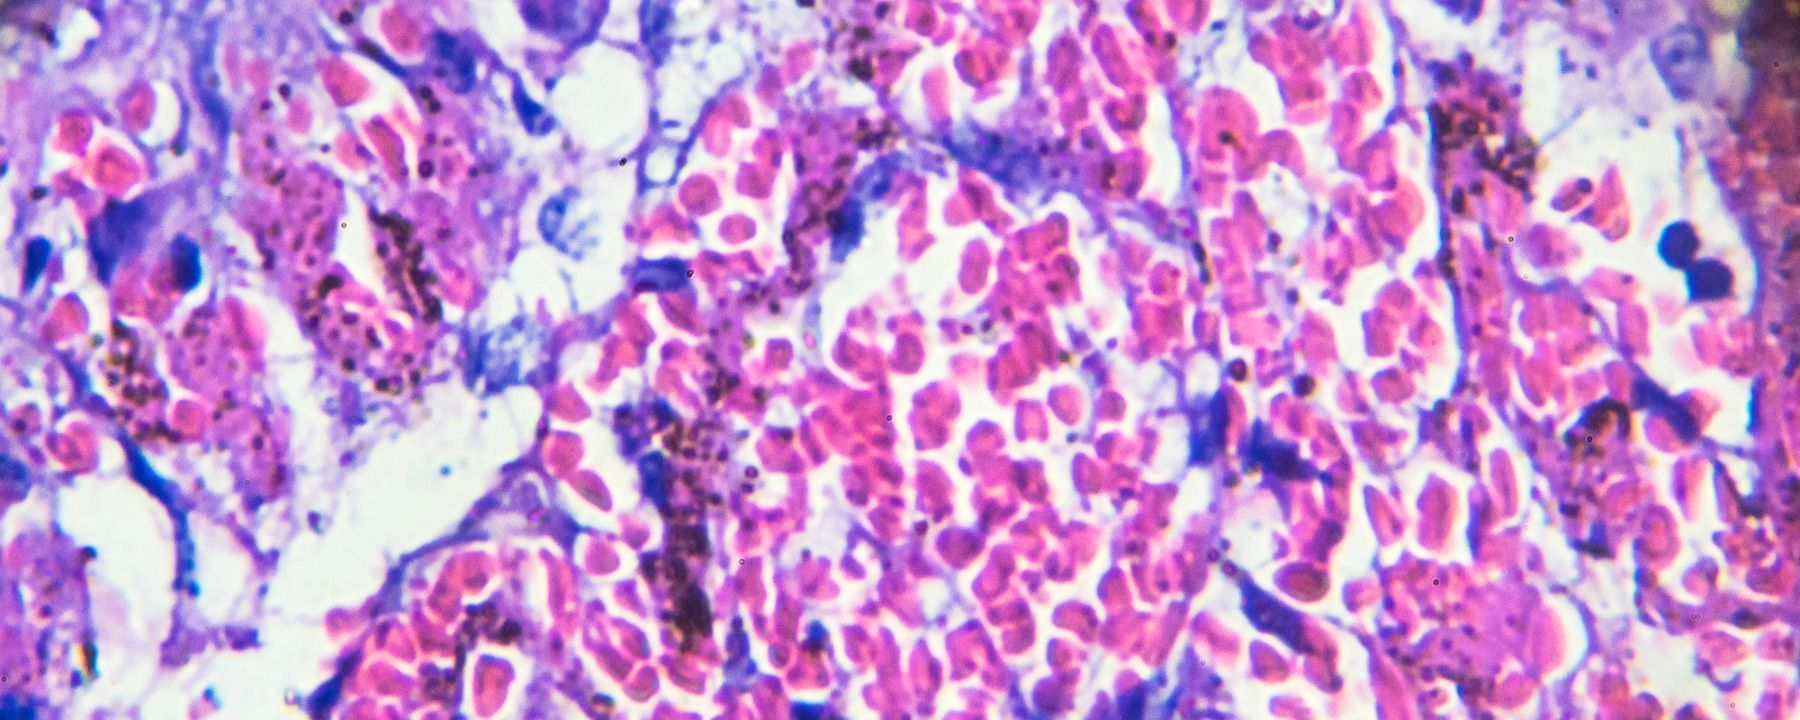 Autopsies Indicate Blood Clots Are Lethal in COVID-19